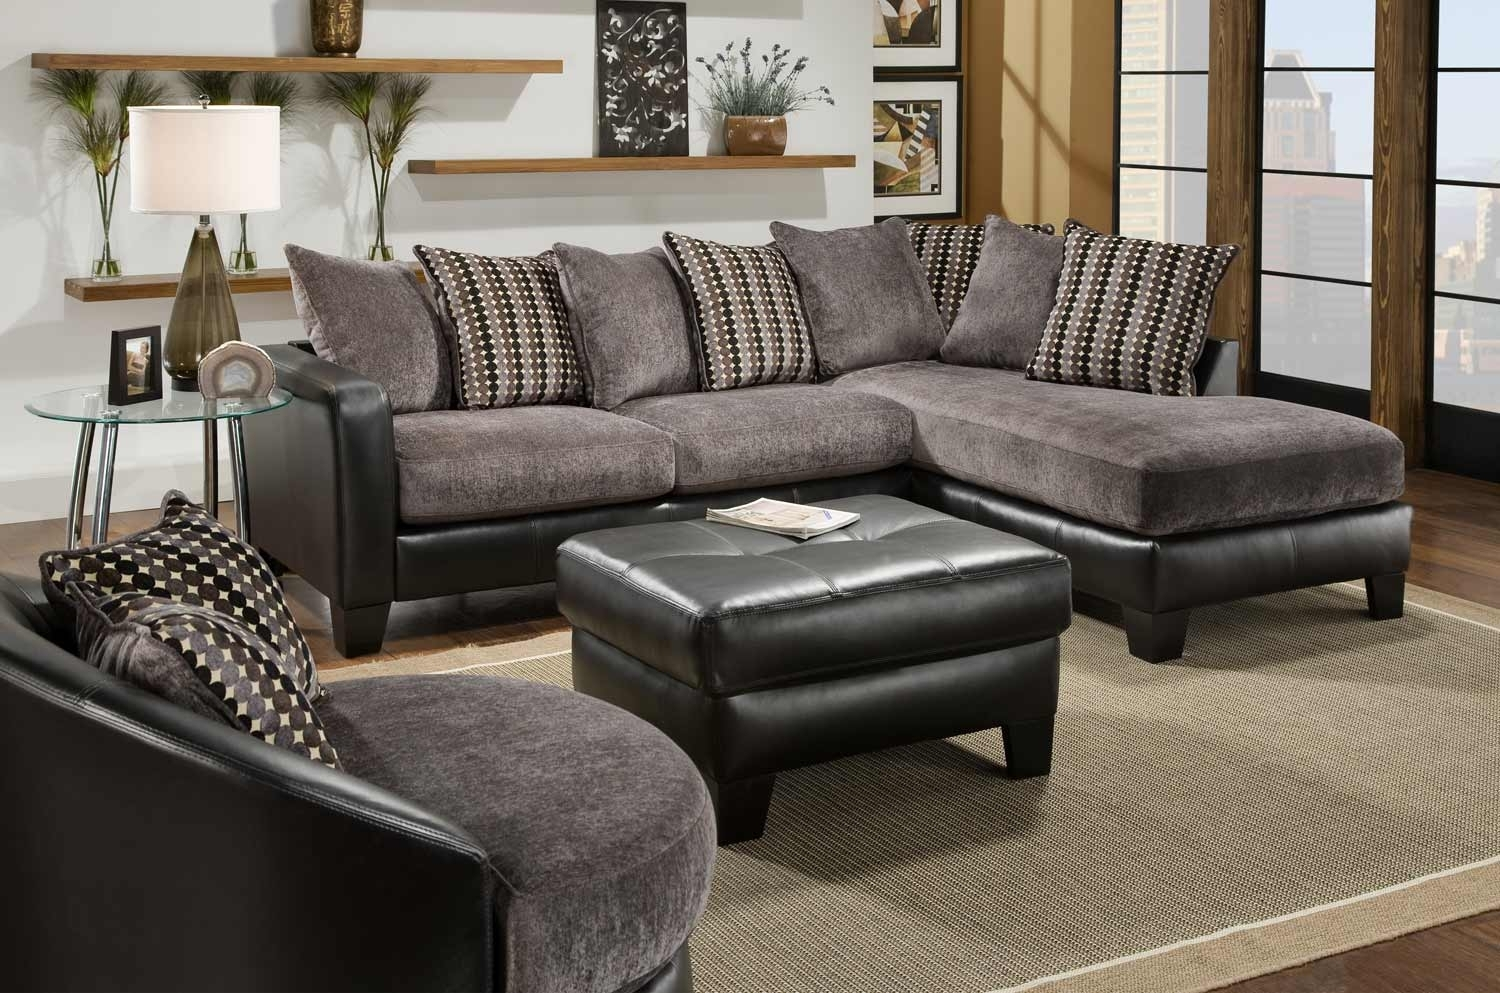 Fascinating Picture Of Living Room Decoration Using L Shape Leather with Black Leather Sectionals With Ottoman (Image 8 of 15)